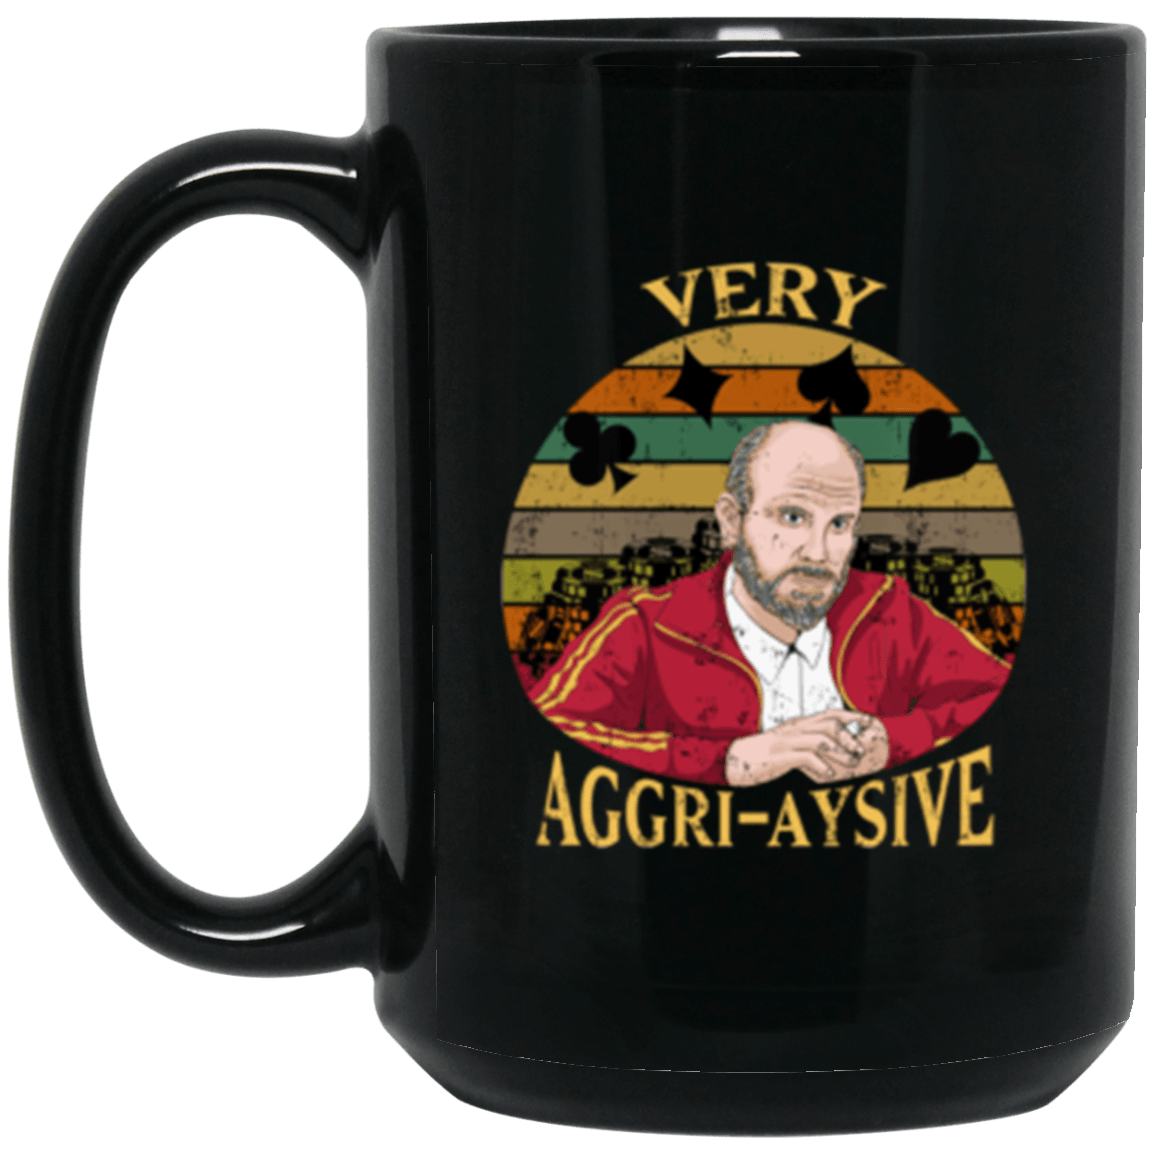 Aggressive Black Mug 15oz (2-sided)